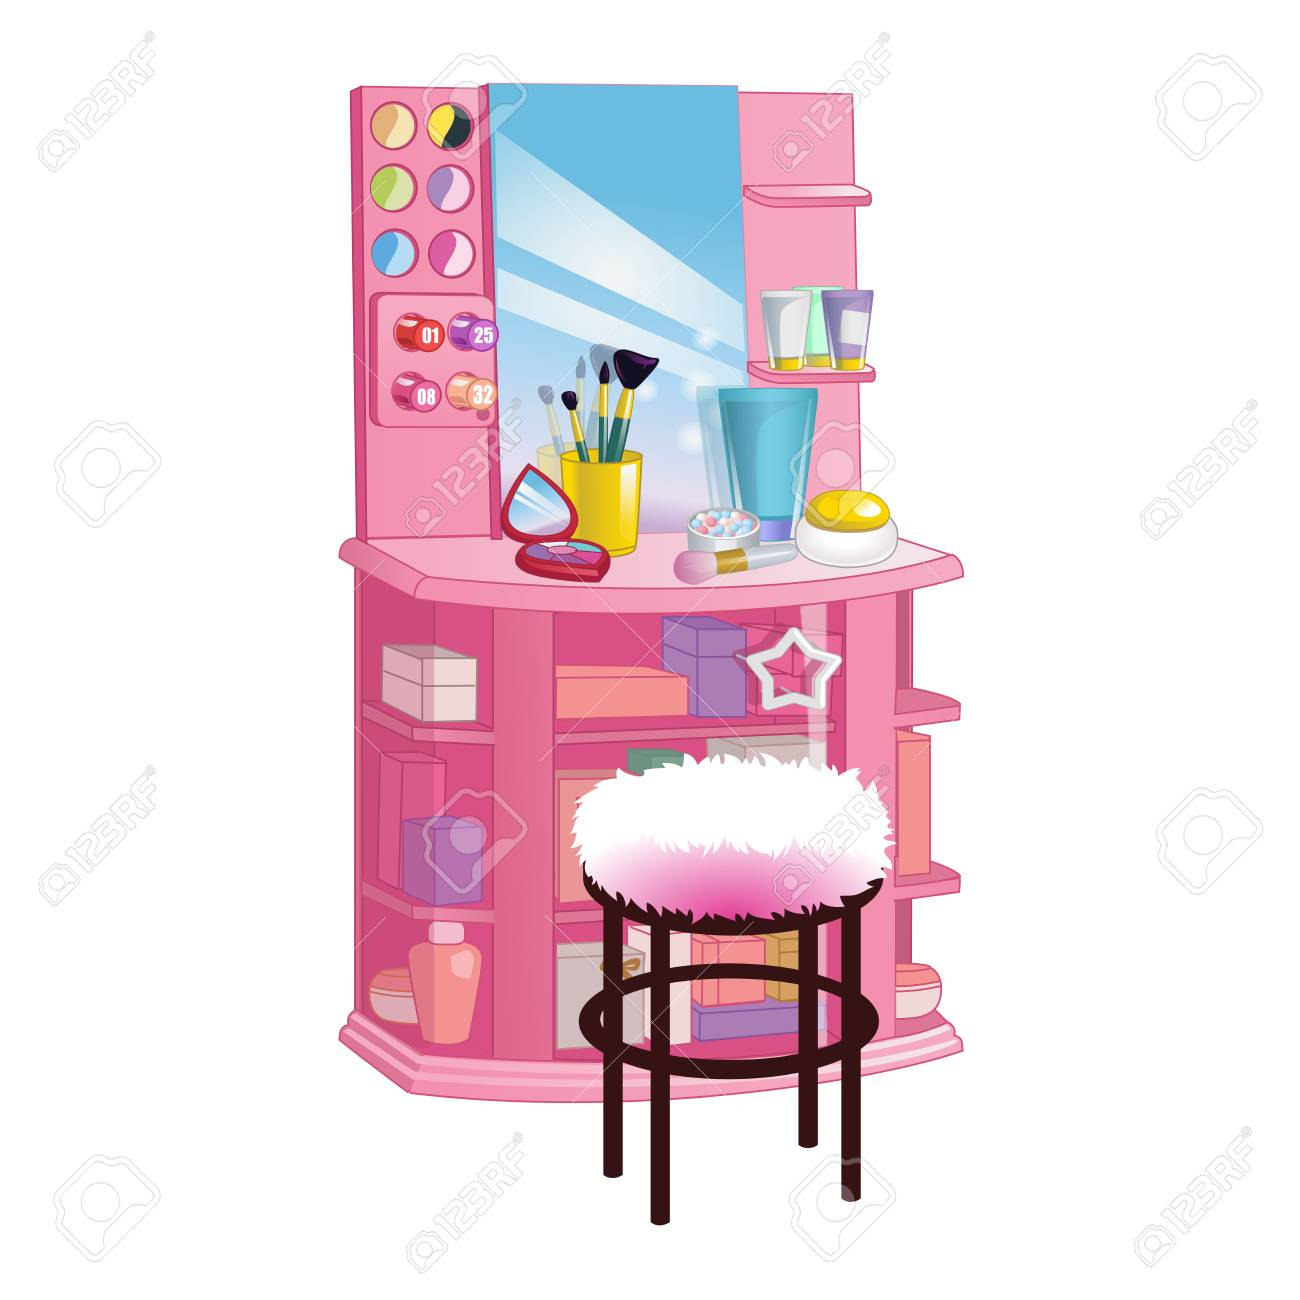 Illustration   Woman Dressing Table With Big Mirror, Chair And Cosmetic.  Flat Style Vector Illustration.